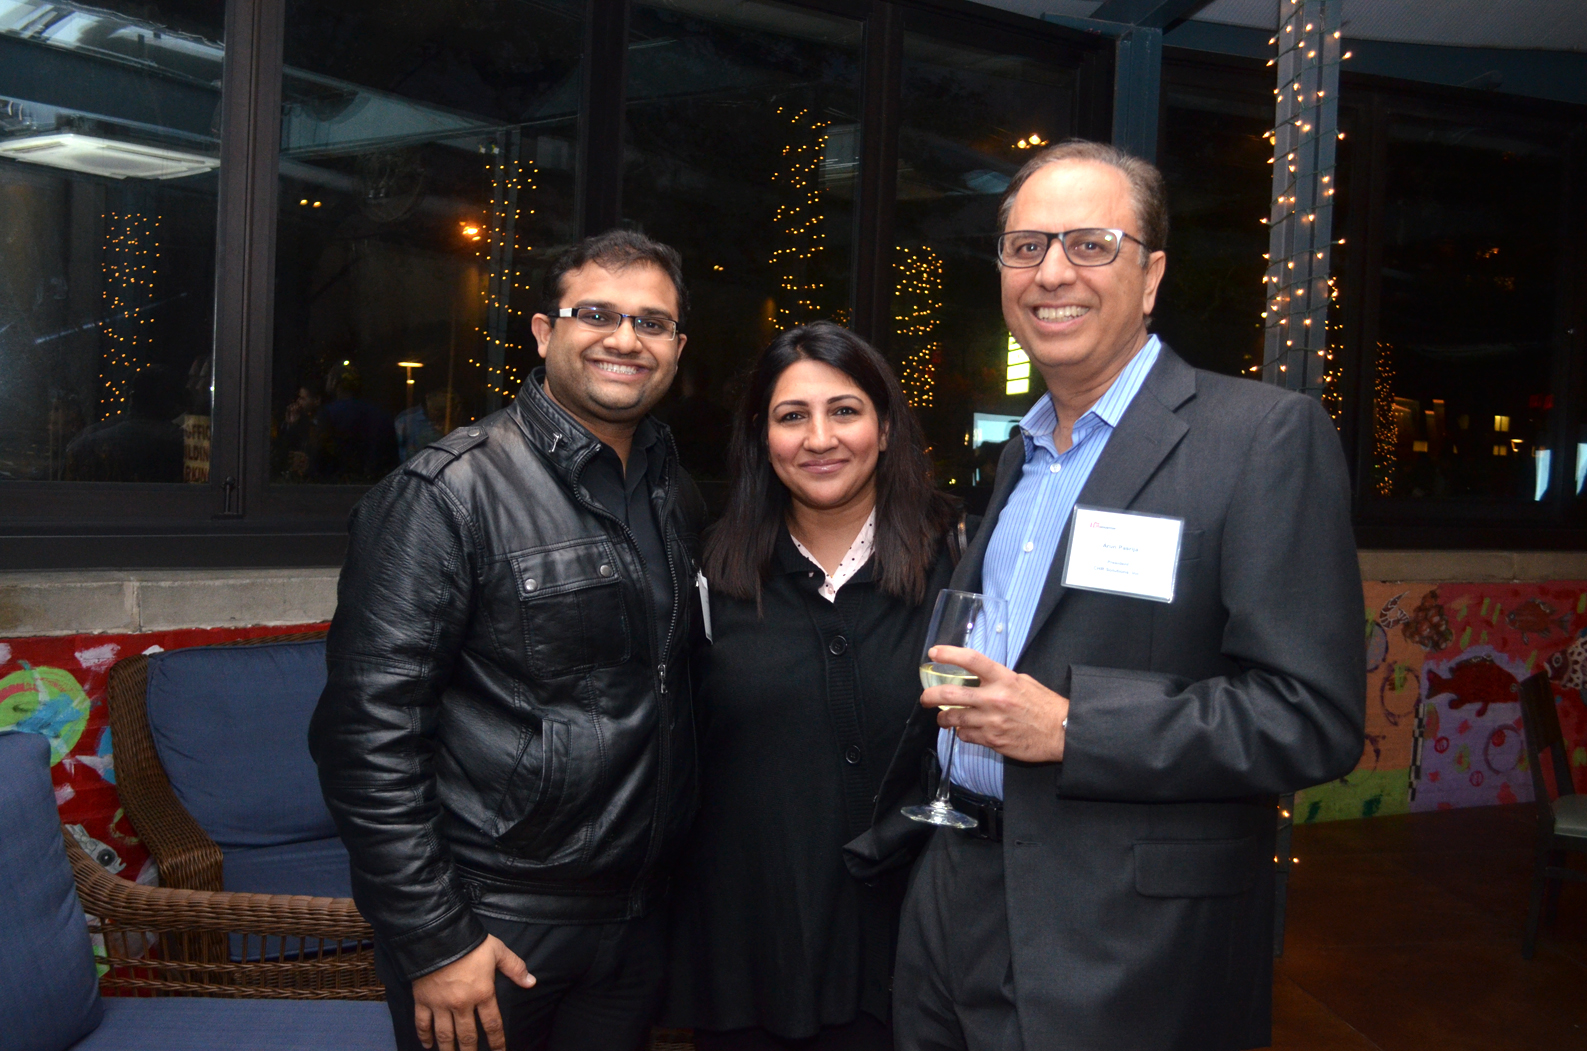 From Left to Right: Ravi Brahmbhatt, TiE Houston Board and Charter member, Sehar Javed, TiE Houston member and Dr. Arun Pasrija, TiE Houston President.